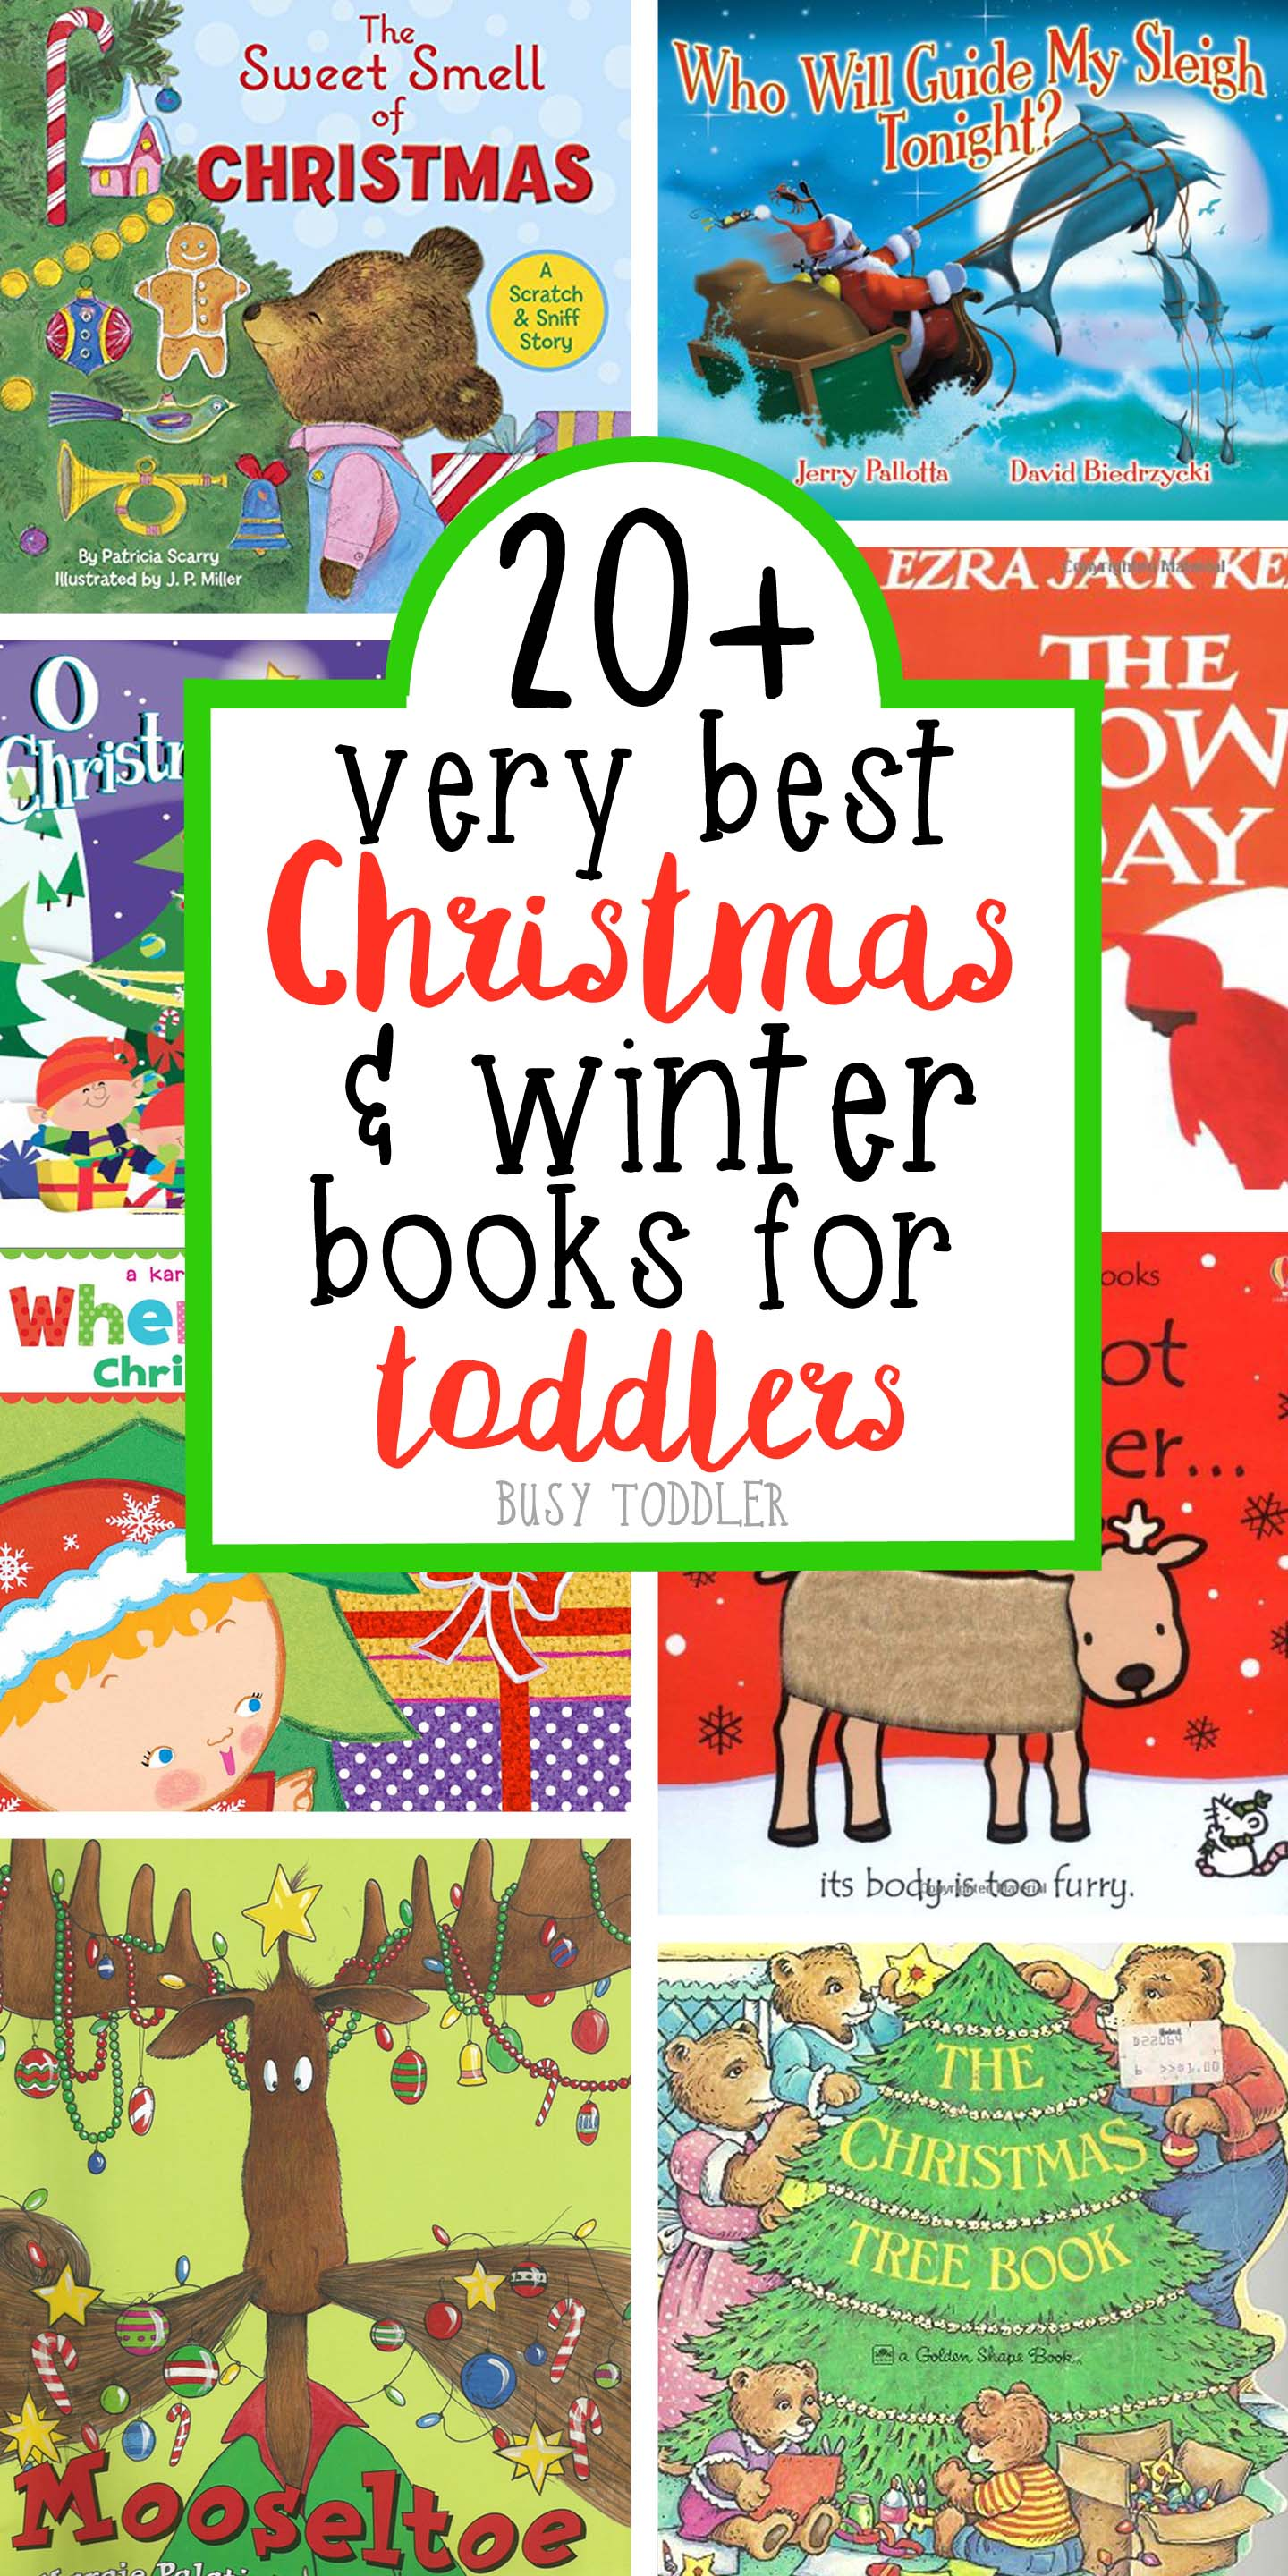 BEST CHRISTMAS BOOKS FOR TODDLERS: Check out this list of 20+ Christmas Books; winter books for toddlers; holiday books for toddlers